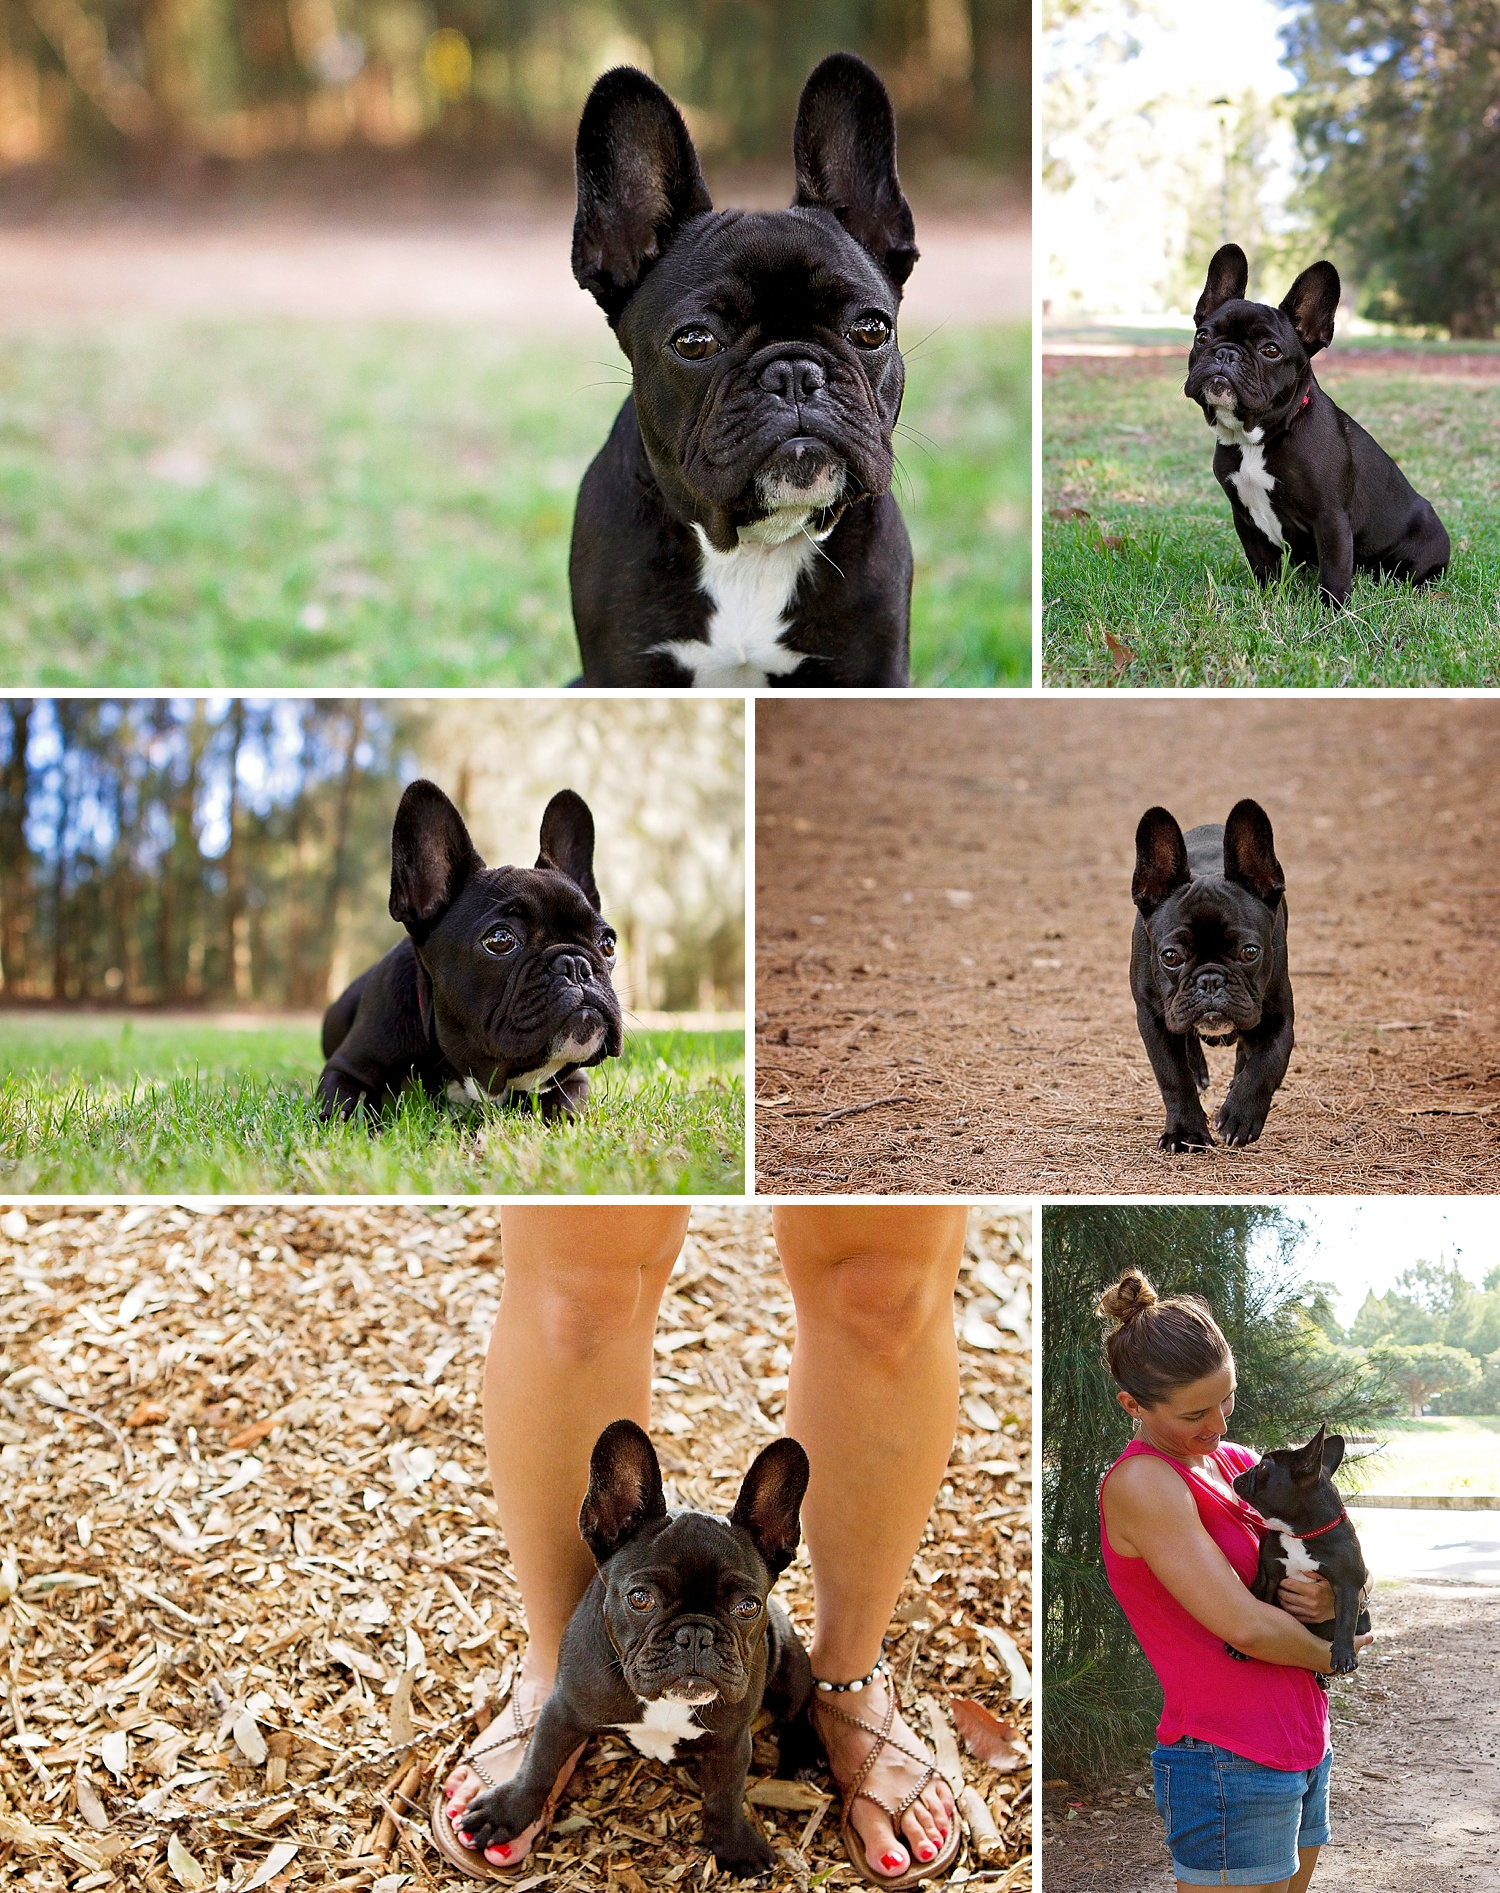 Jersey, the French Bulldog and her mum Michelle took part in the Dog Days of Summer with Sydney based pet photographer - Pawtastic Photography